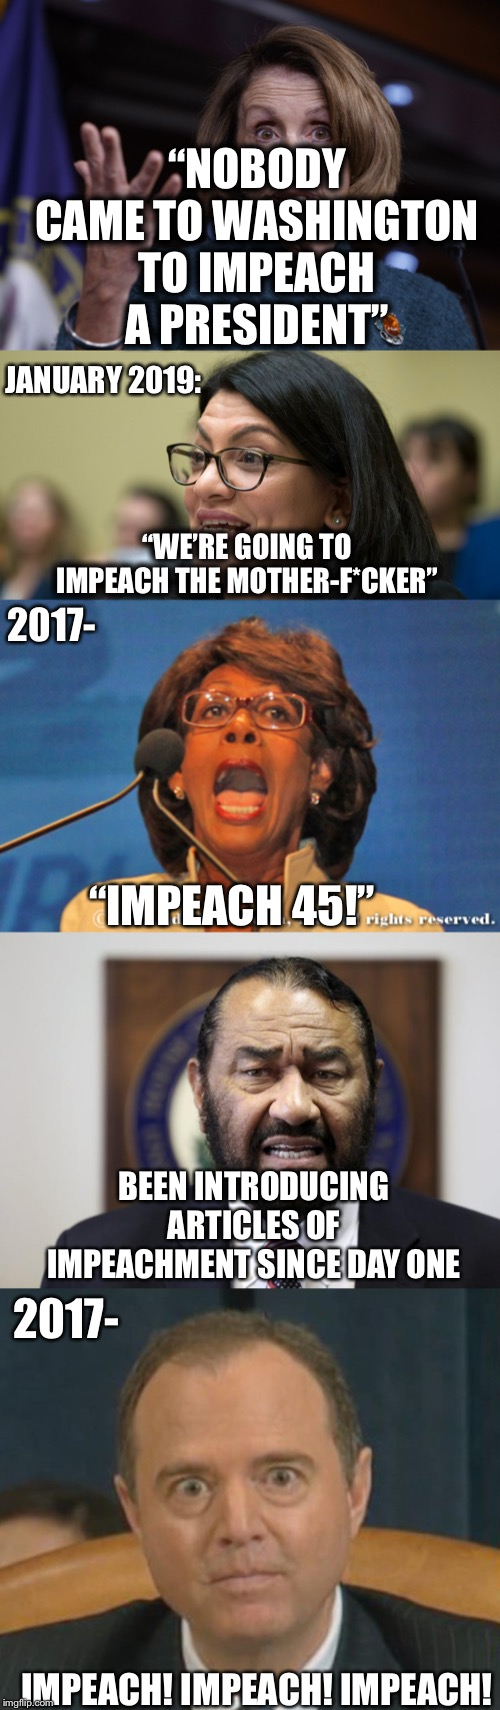 """NOBODY CAME TO WASHINGTON TO IMPEACH A PRESIDENT""; JANUARY 2019:; ""WE'RE GOING TO IMPEACH THE MOTHER-F*CKER""; 2017-; ""IMPEACH 45!""; BEEN INTRODUCING ARTICLES OF IMPEACHMENT SINCE DAY ONE; 2017-; IMPEACH! IMPEACH! IMPEACH! 